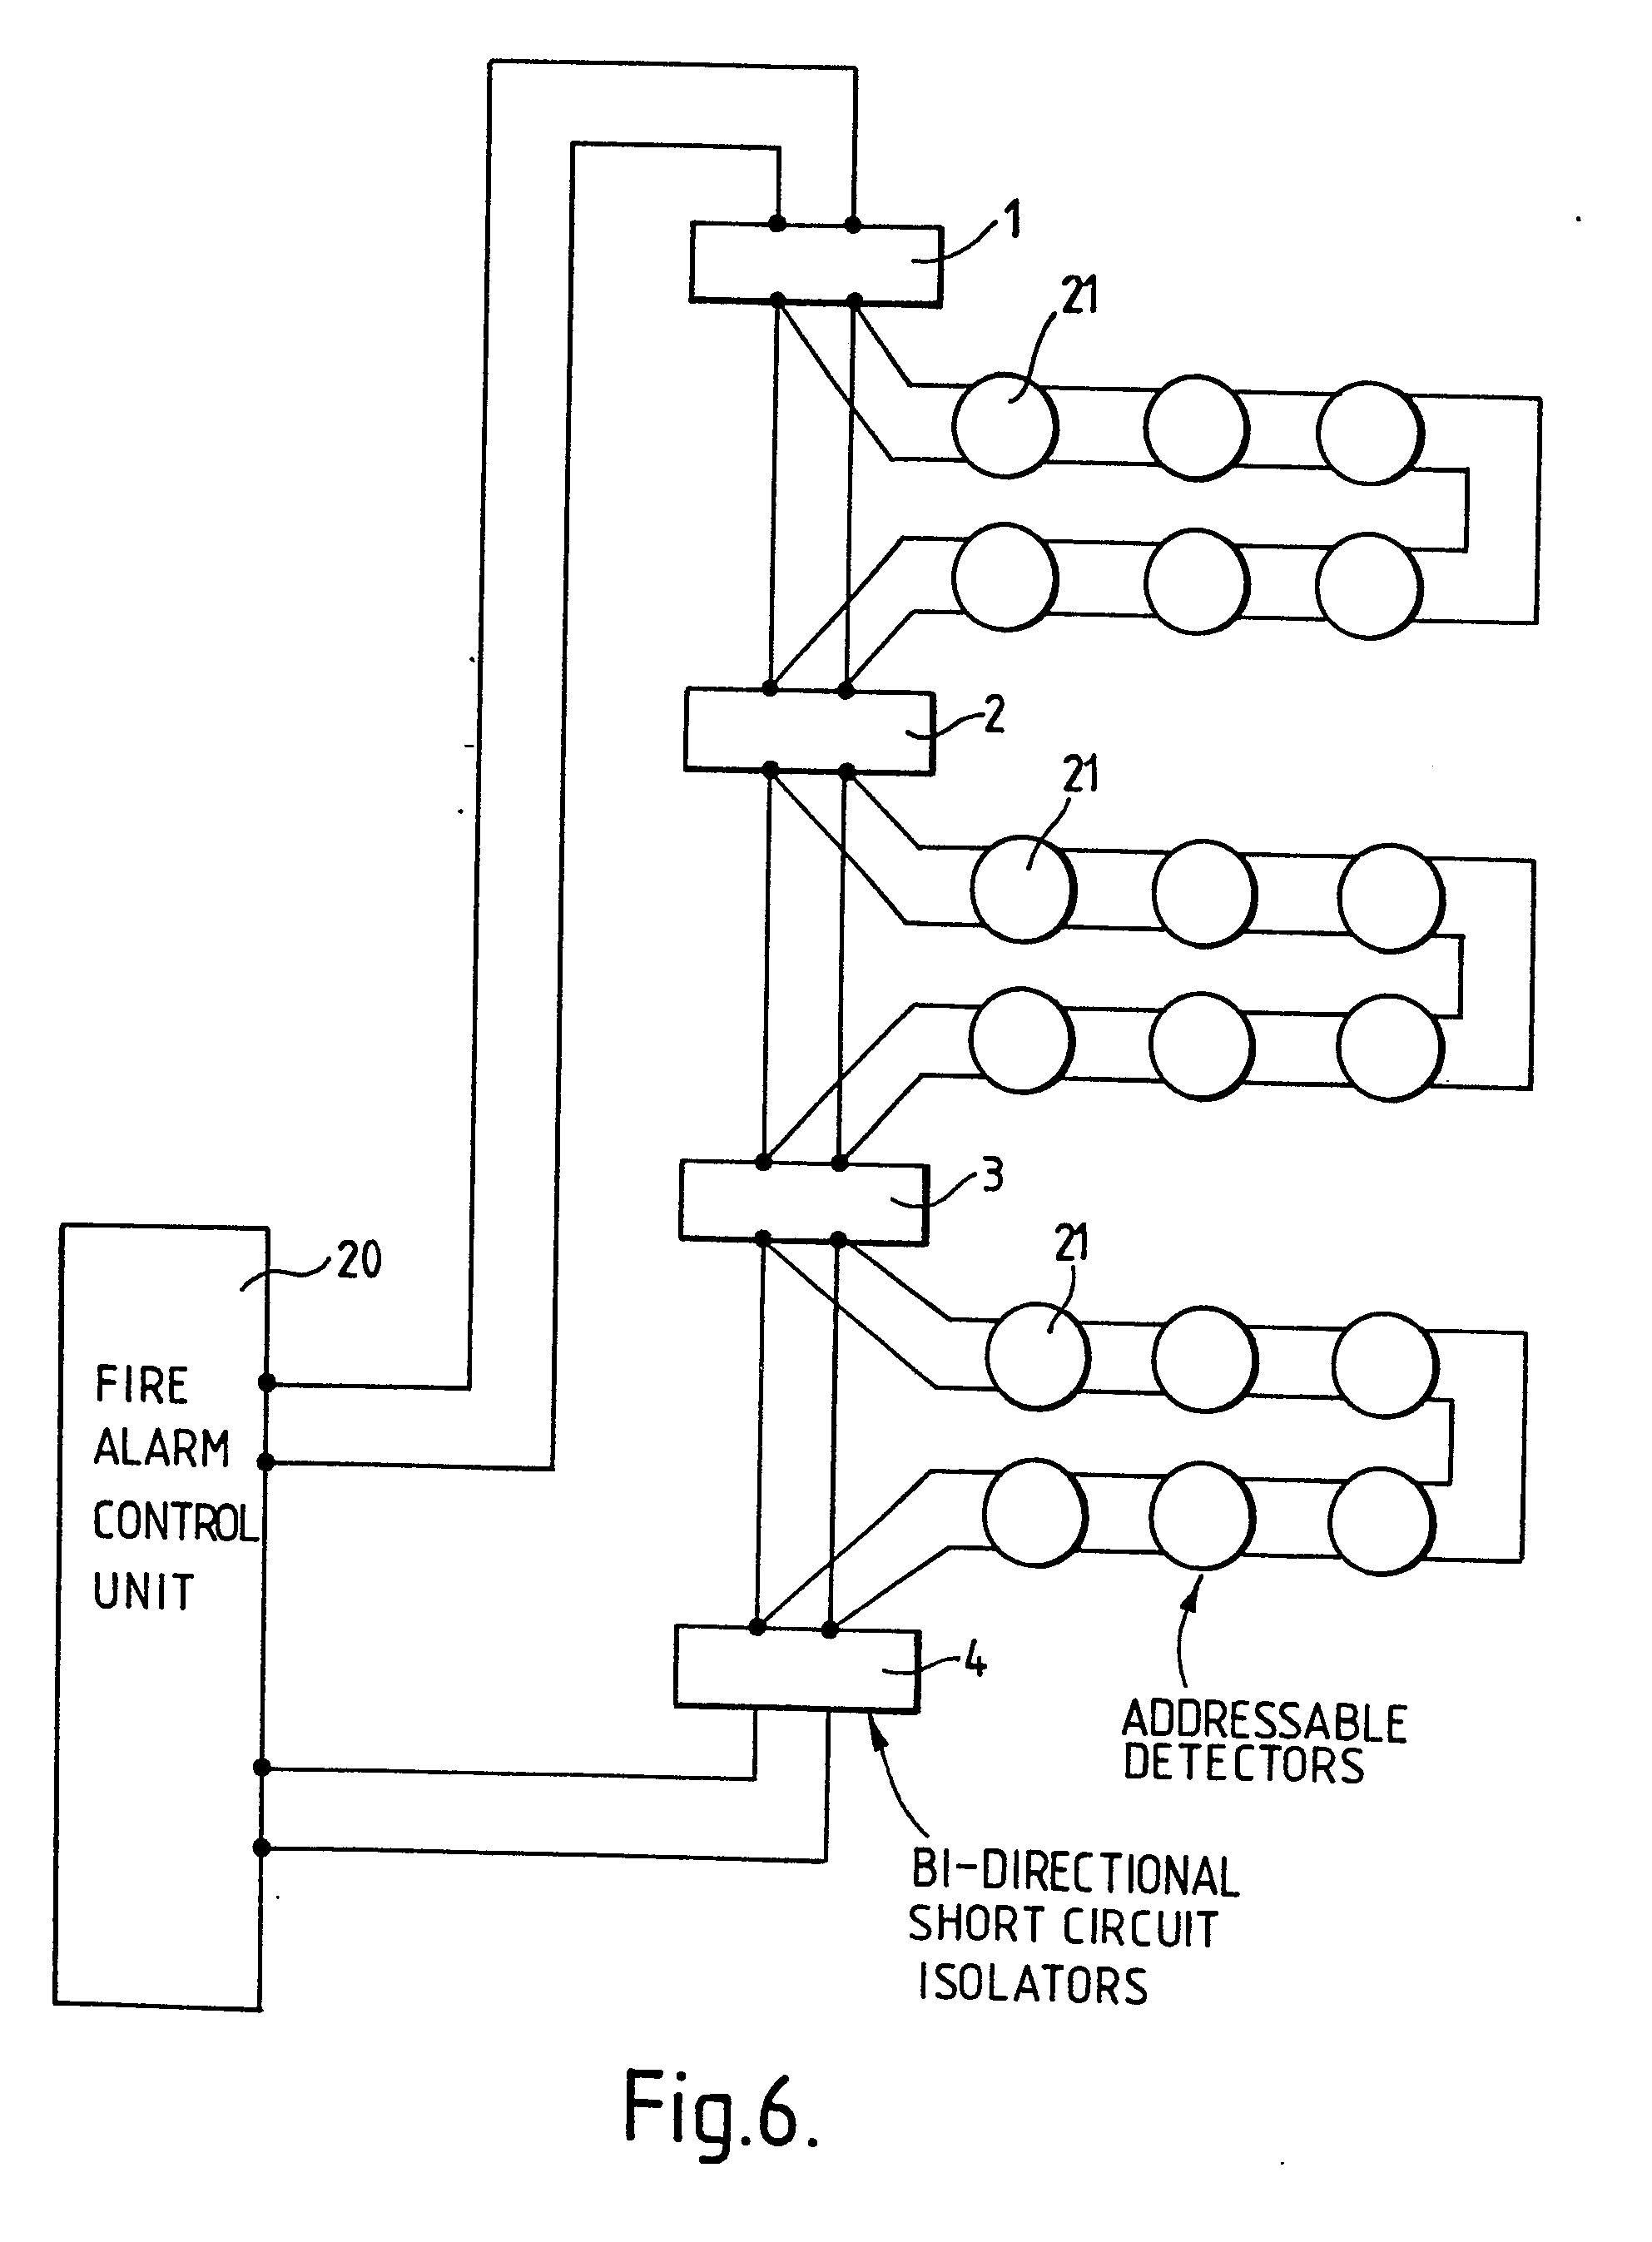 imgf0005 addressable fire alarm circuit diagram circuit and schematics fire alarm wiring schematic at bakdesigns.co